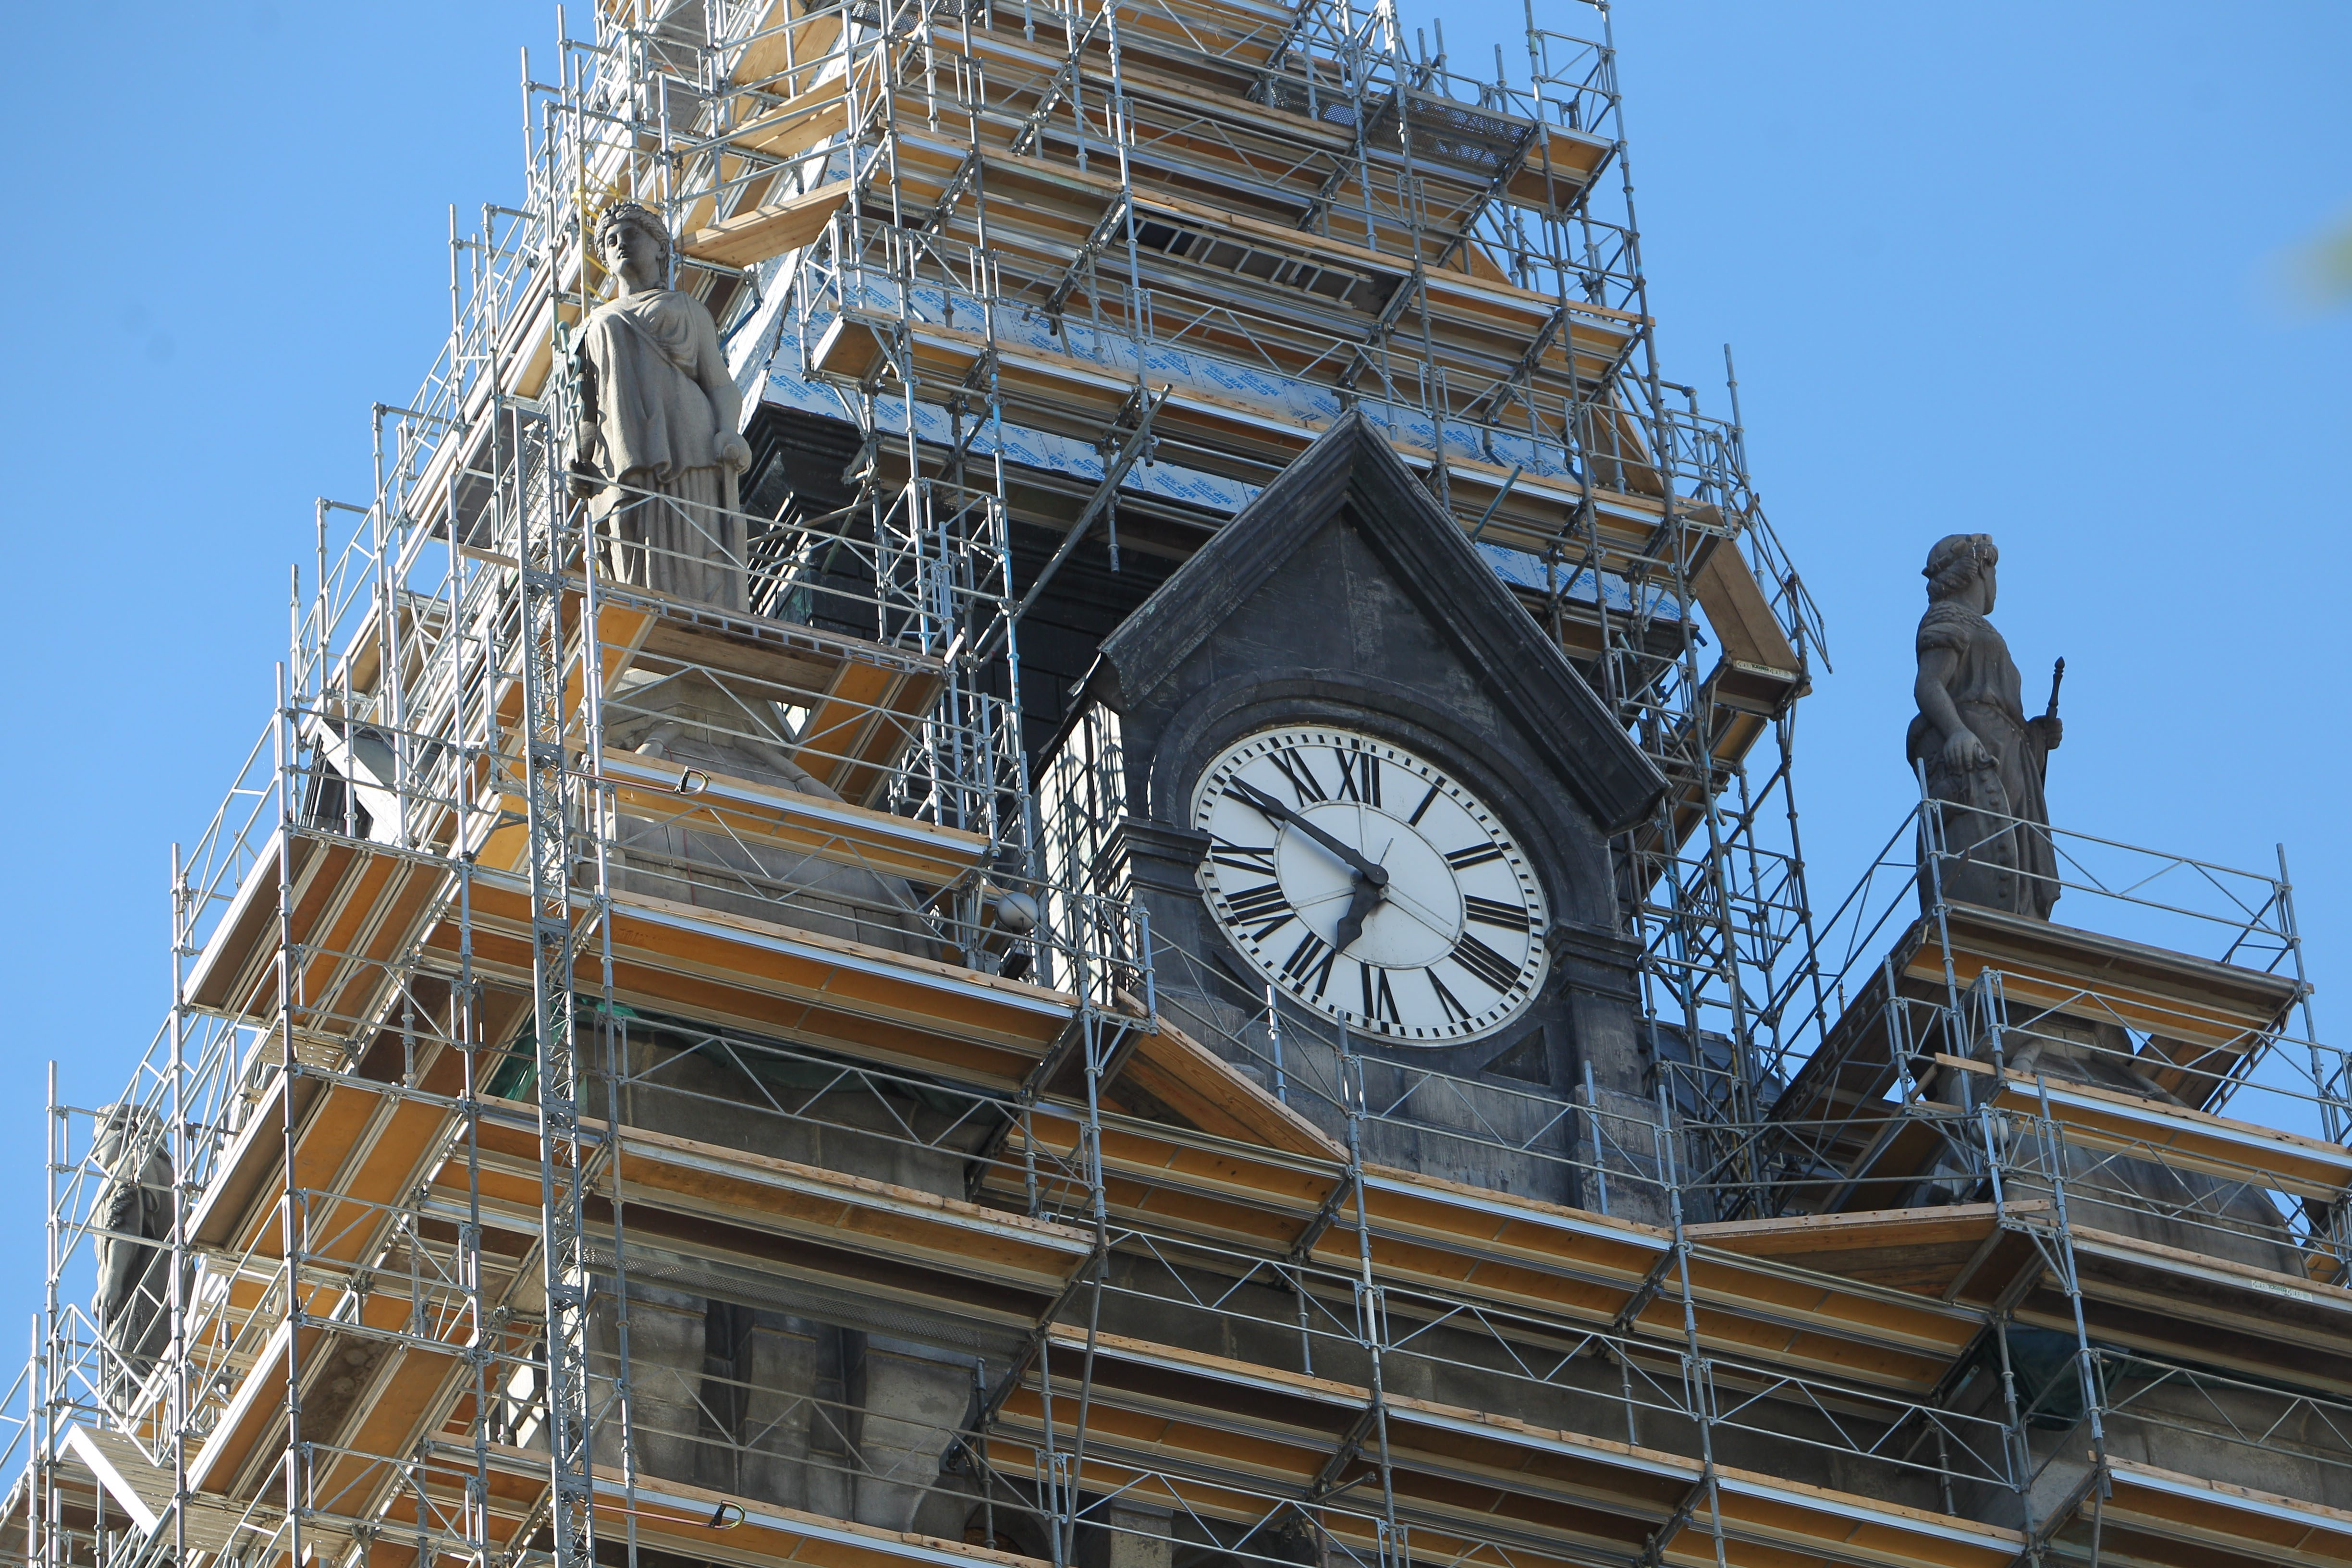 The tower at  the Erie County Courthouse on Franklin St. is being restored, the first time since it was built in 1876,  The work began in June and will finish sometime in 2014.  Photo taken, Tuesday, Sept. 17, 2013.  (Sharon Cantillon/Buffalo News)